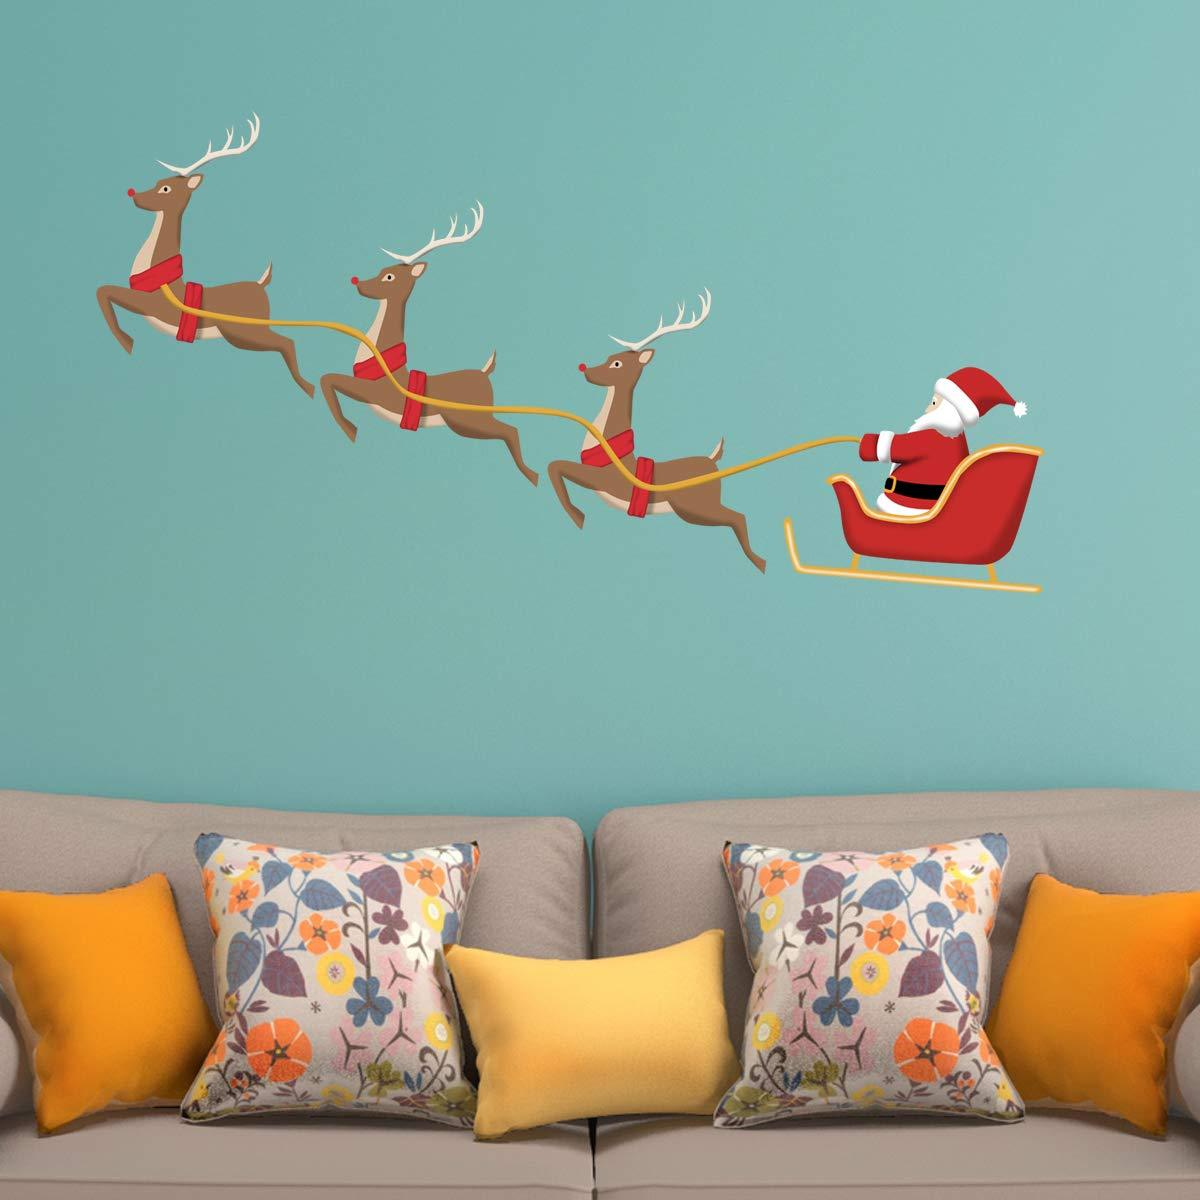 VWAQ Santa Claus Reindeer Christmas Holiday Wall Decal Sticker - HOL1 - VWAQ Vinyl Wall Art Quotes and Prints